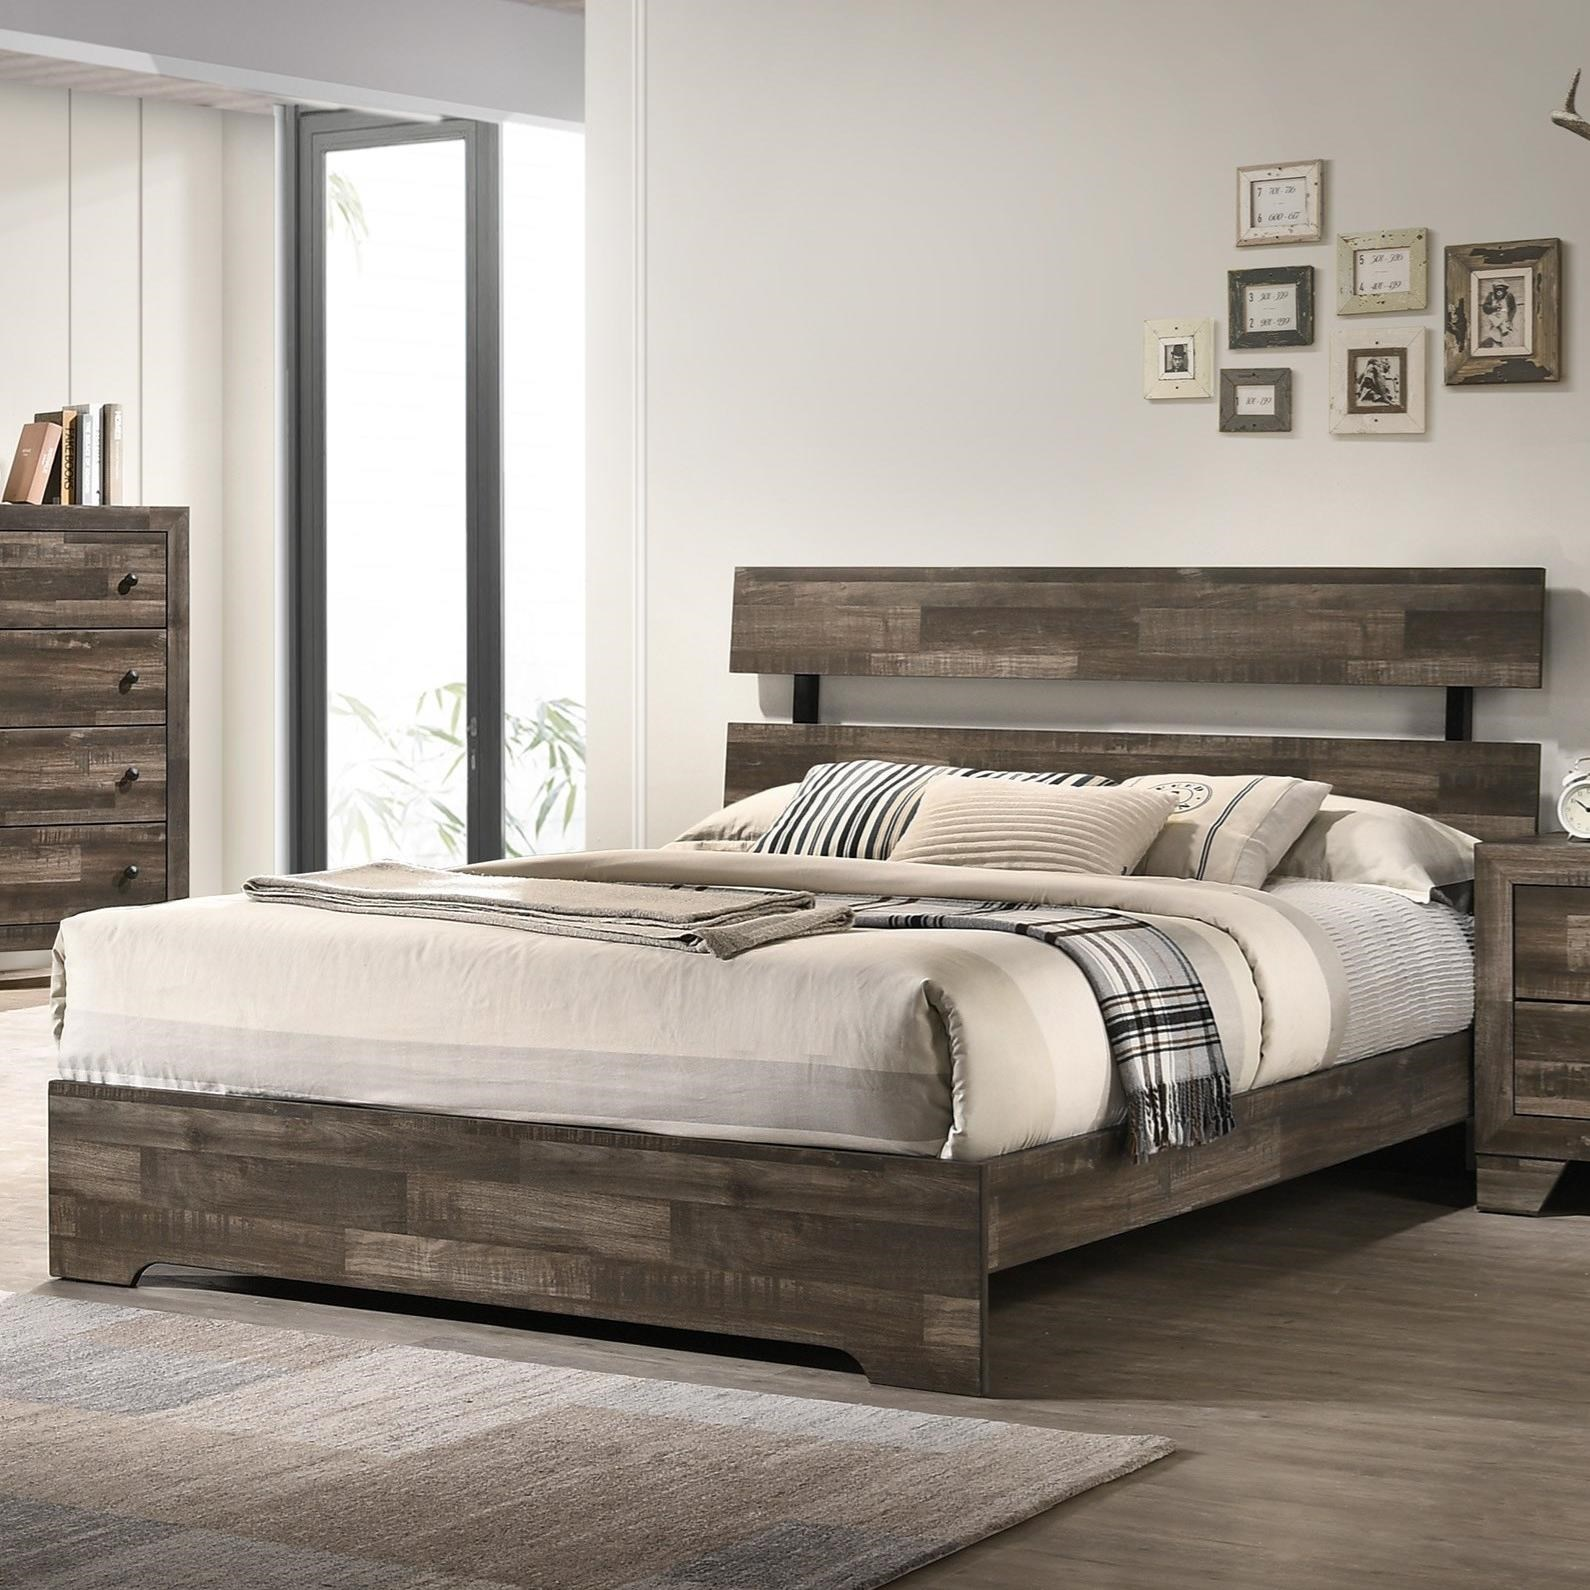 Atticus California King Bed by Crown Mark at Northeast Factory Direct